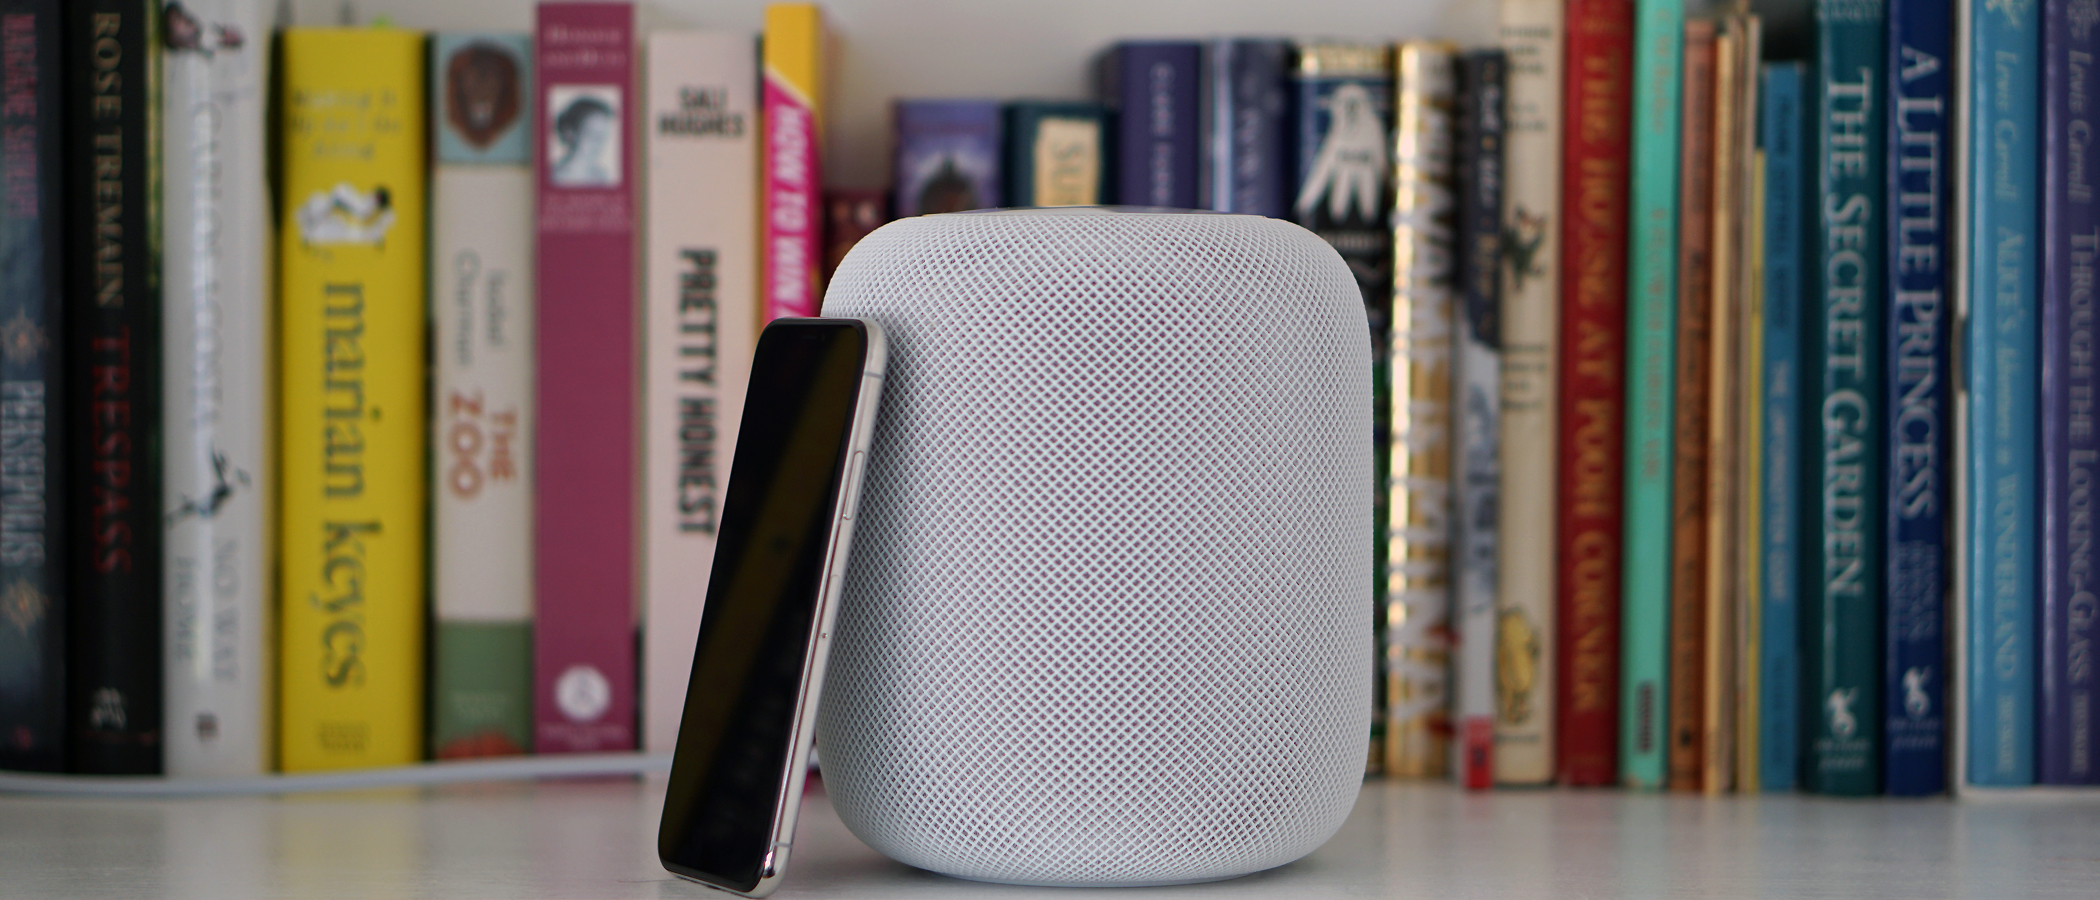 Apple HomePod review: fantastic audio, cool looks, Siri is